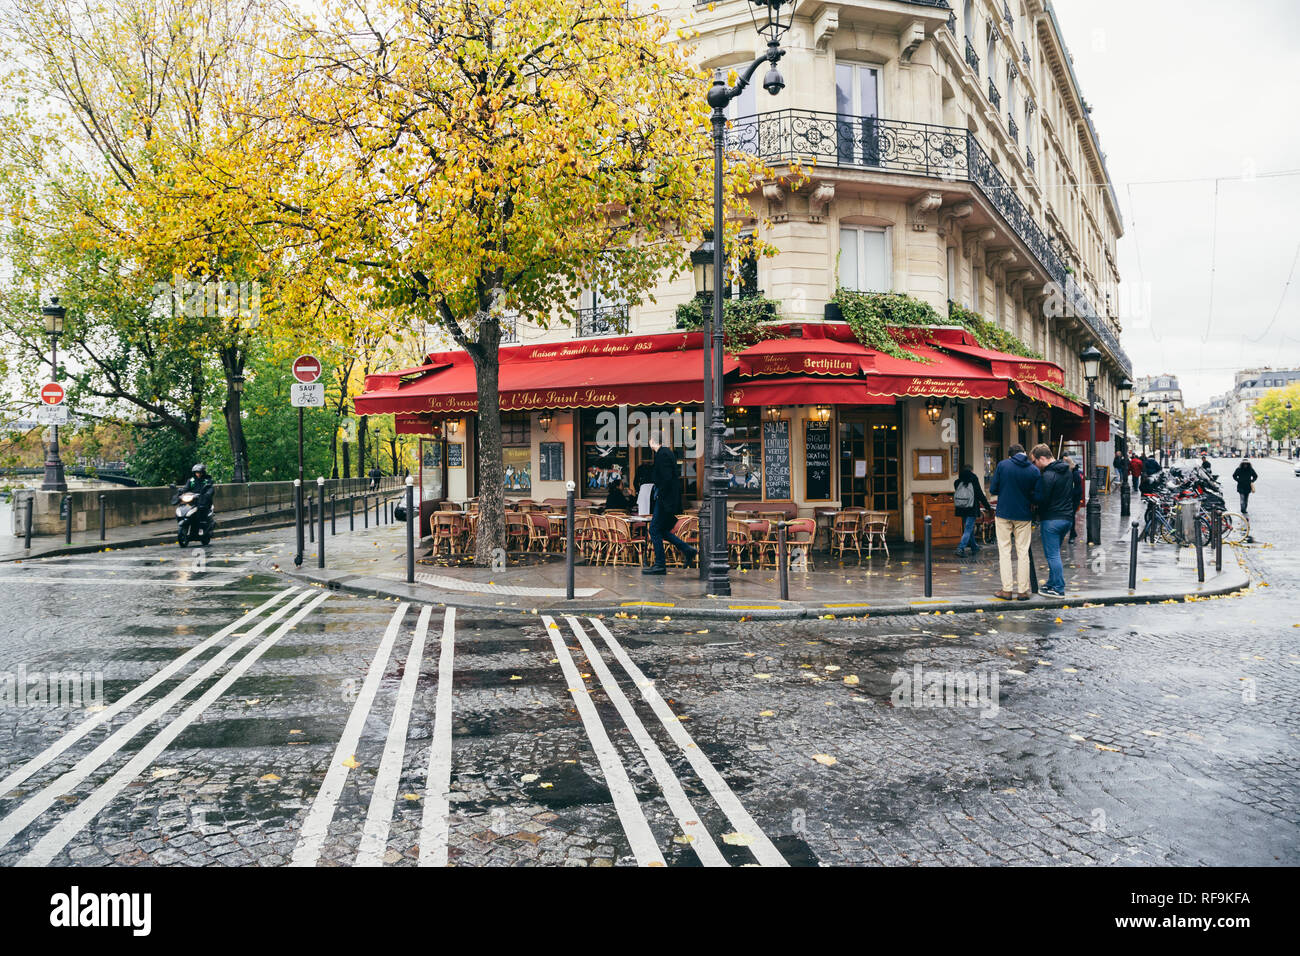 Paris (France) - La Brasserie de l'Isle Saint-Louis in the centre of Paris Stock Photo